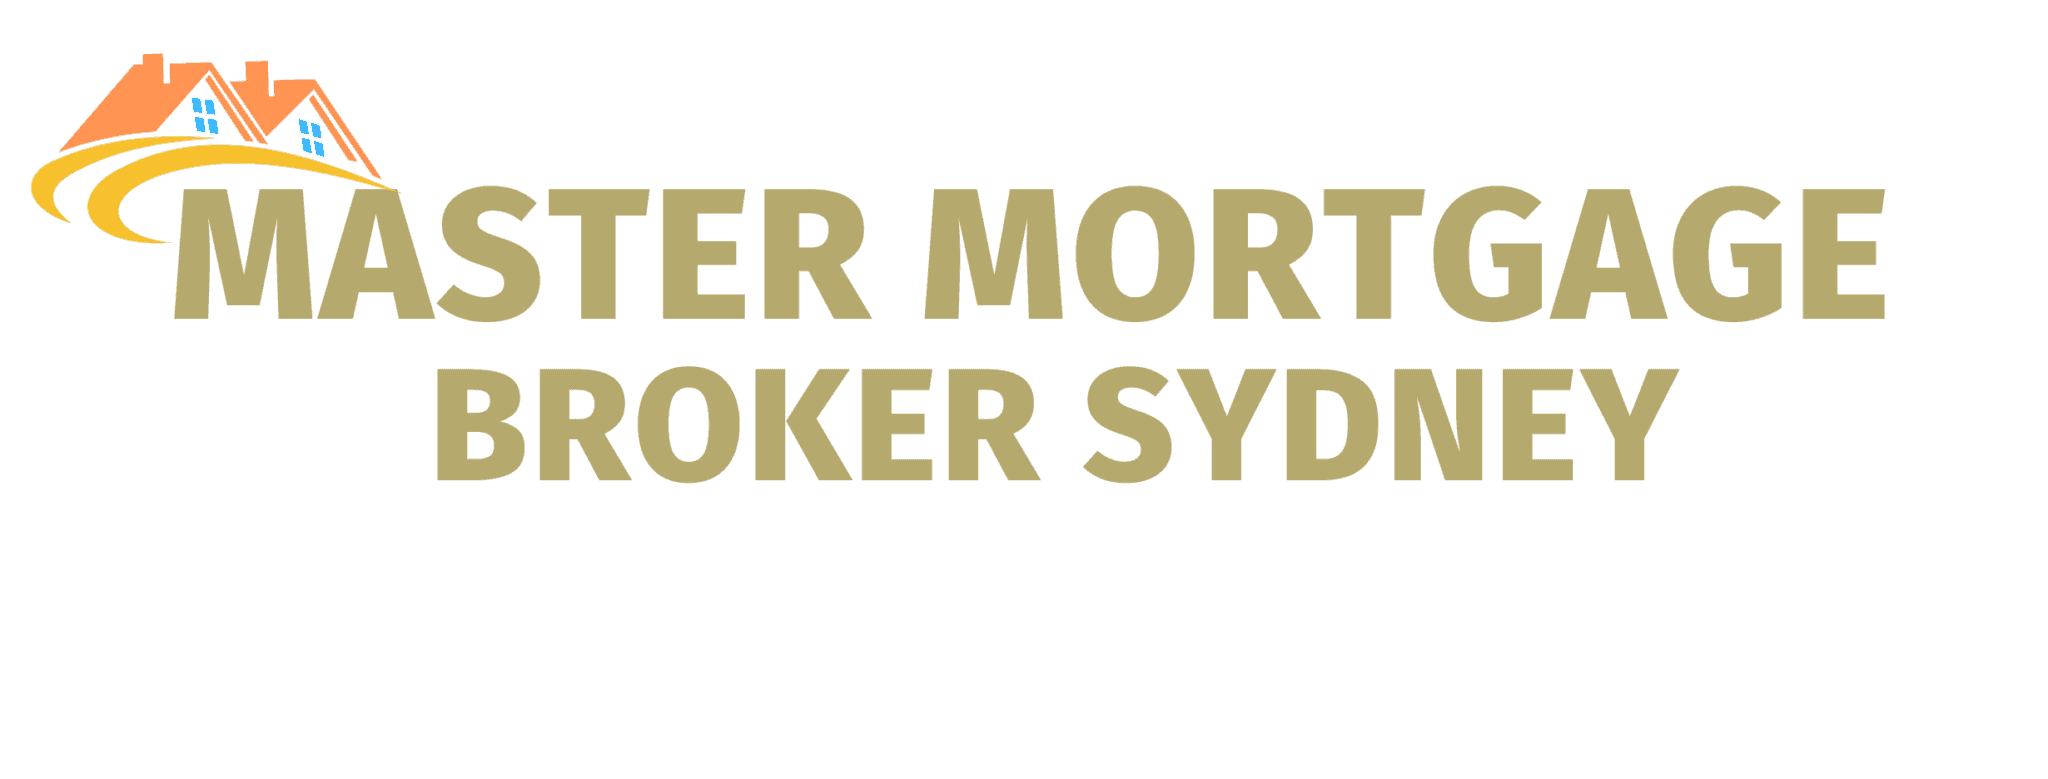 Gold Master Mortgage Broker Sydney